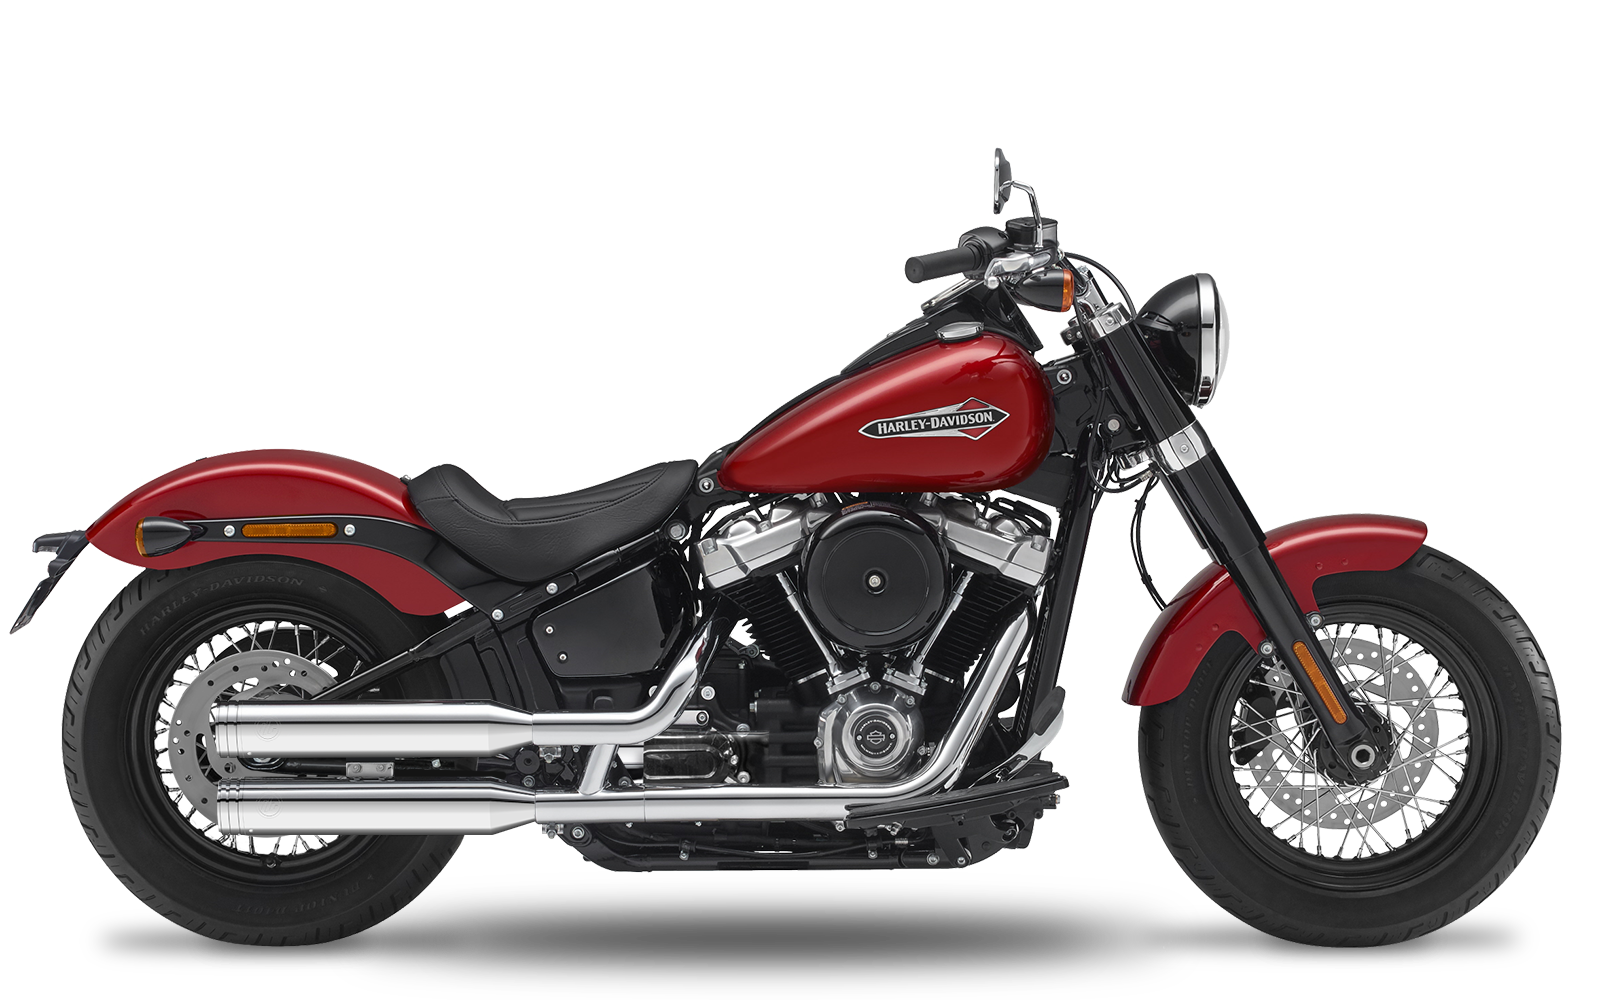 Softail - Low Rider - ME107 - 2018-2020 - Endtöpfe